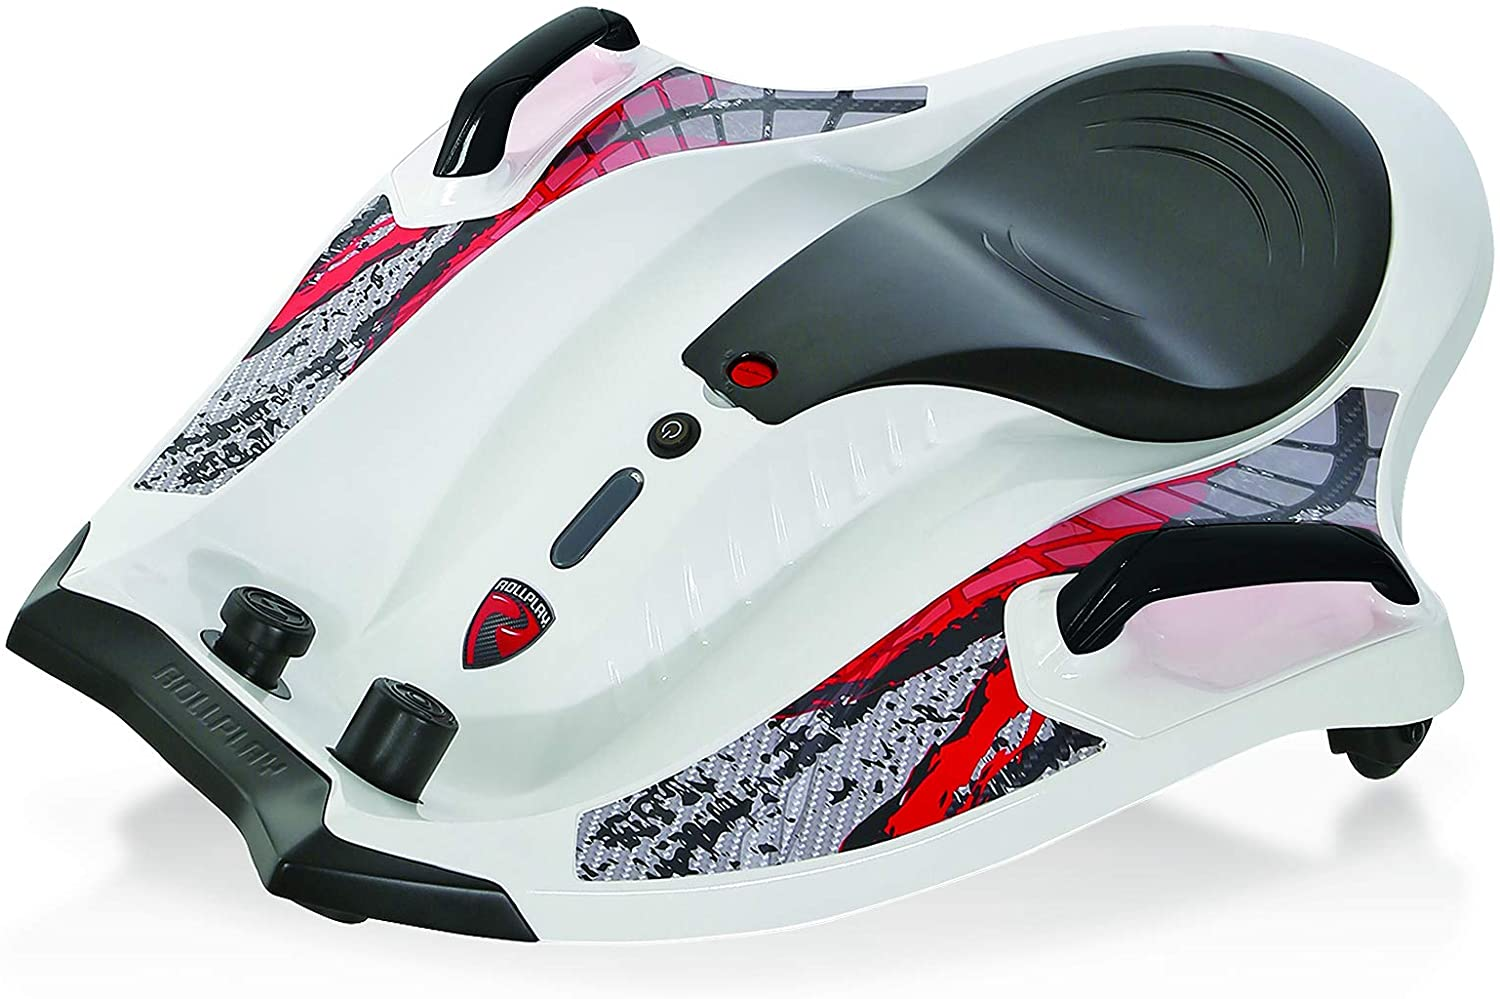 Rollplay 12V Nighthawk Electric Ride-On Toy For Ages 6 & Up - Battery-Powered Kid's Ride-On For Boys & Girls Up To 6 mph- White